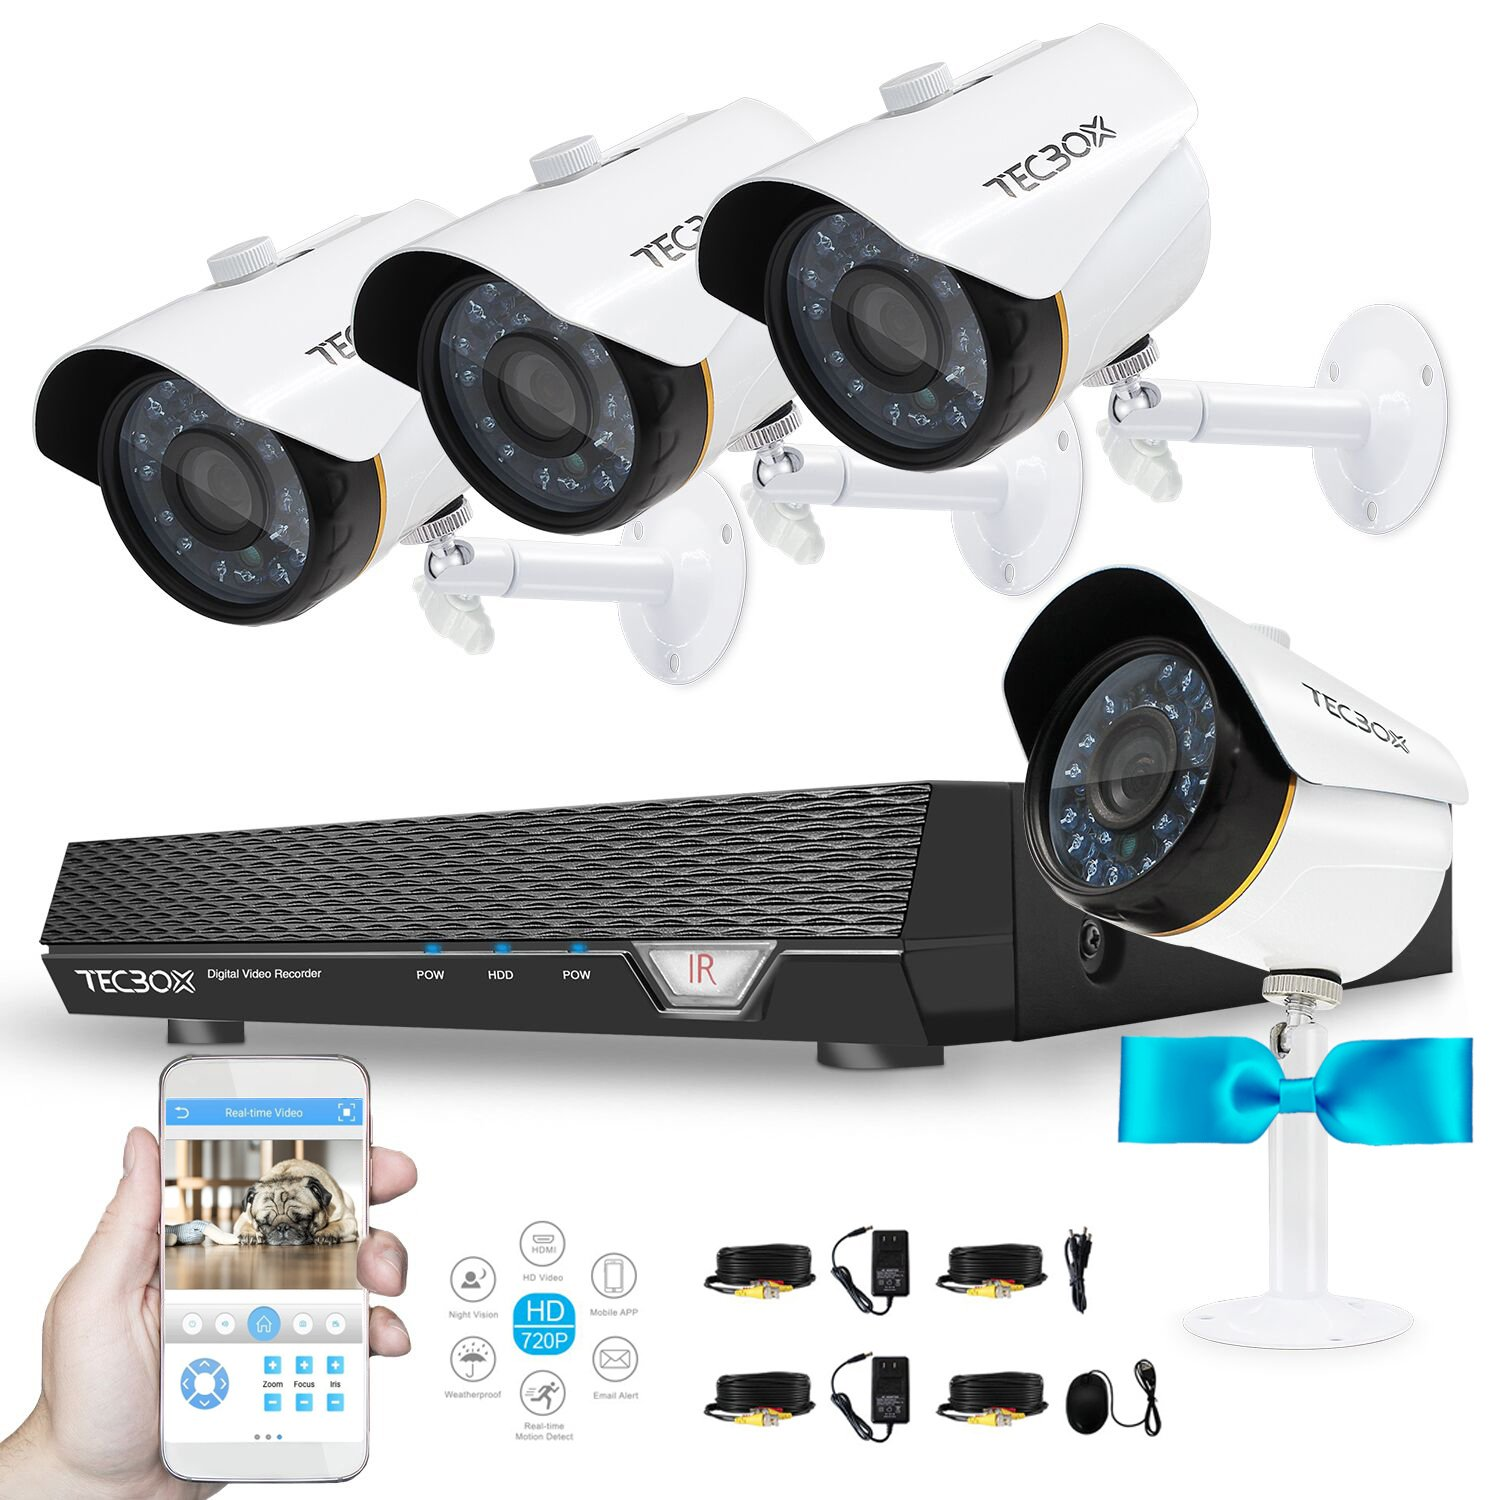 Video Surveillance System 720P 4CH Security DVR System (No Hard Drive) with 4 1.5MP Security Cameras Weatherproof CCTV Cameras Security Video System